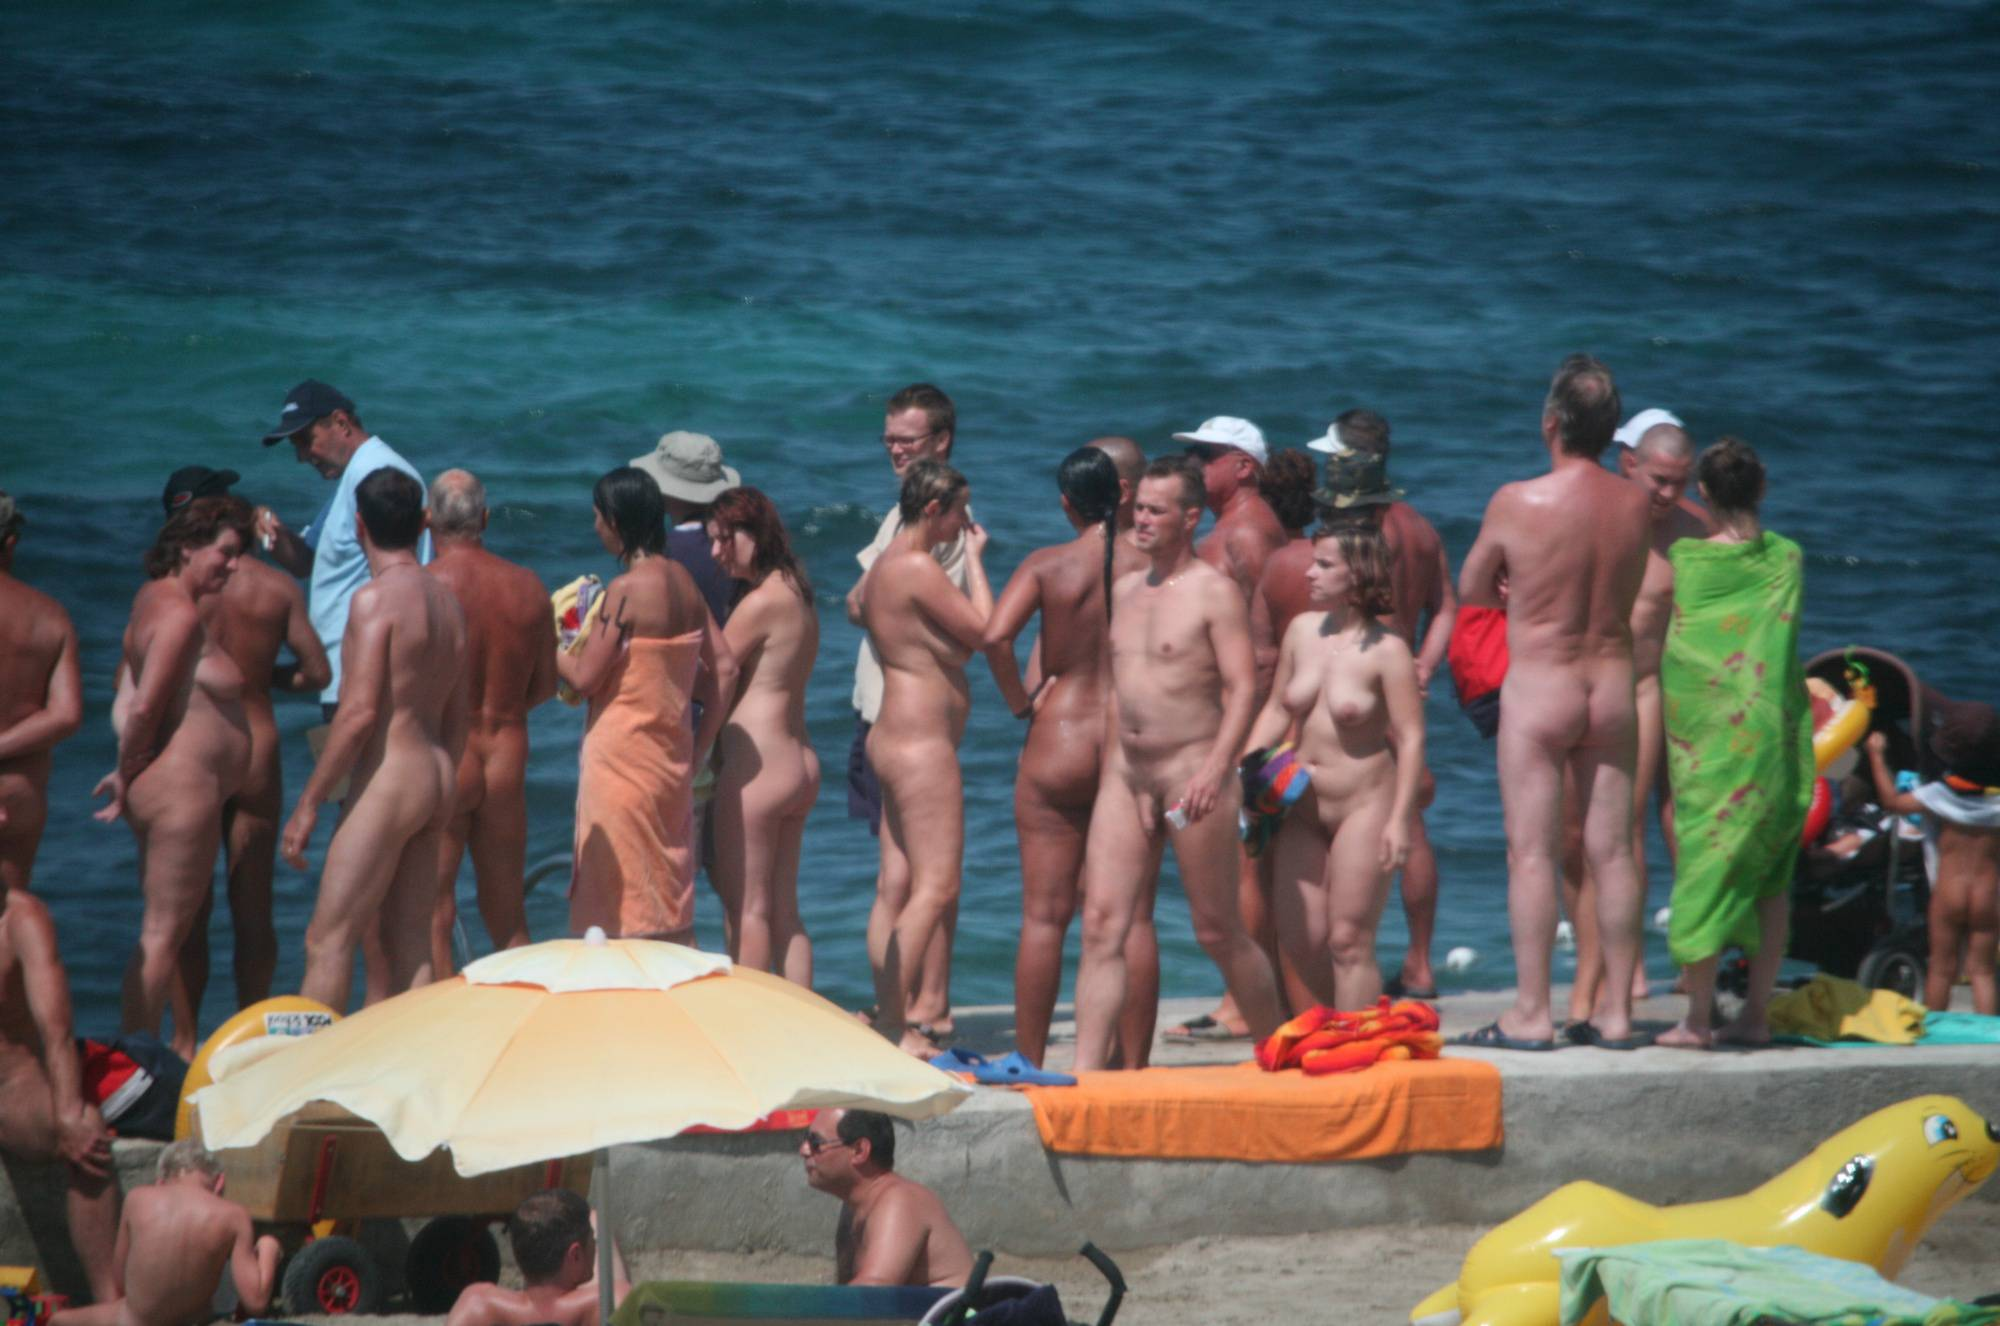 Nudist Pictures Pier Sand Square Group - 2